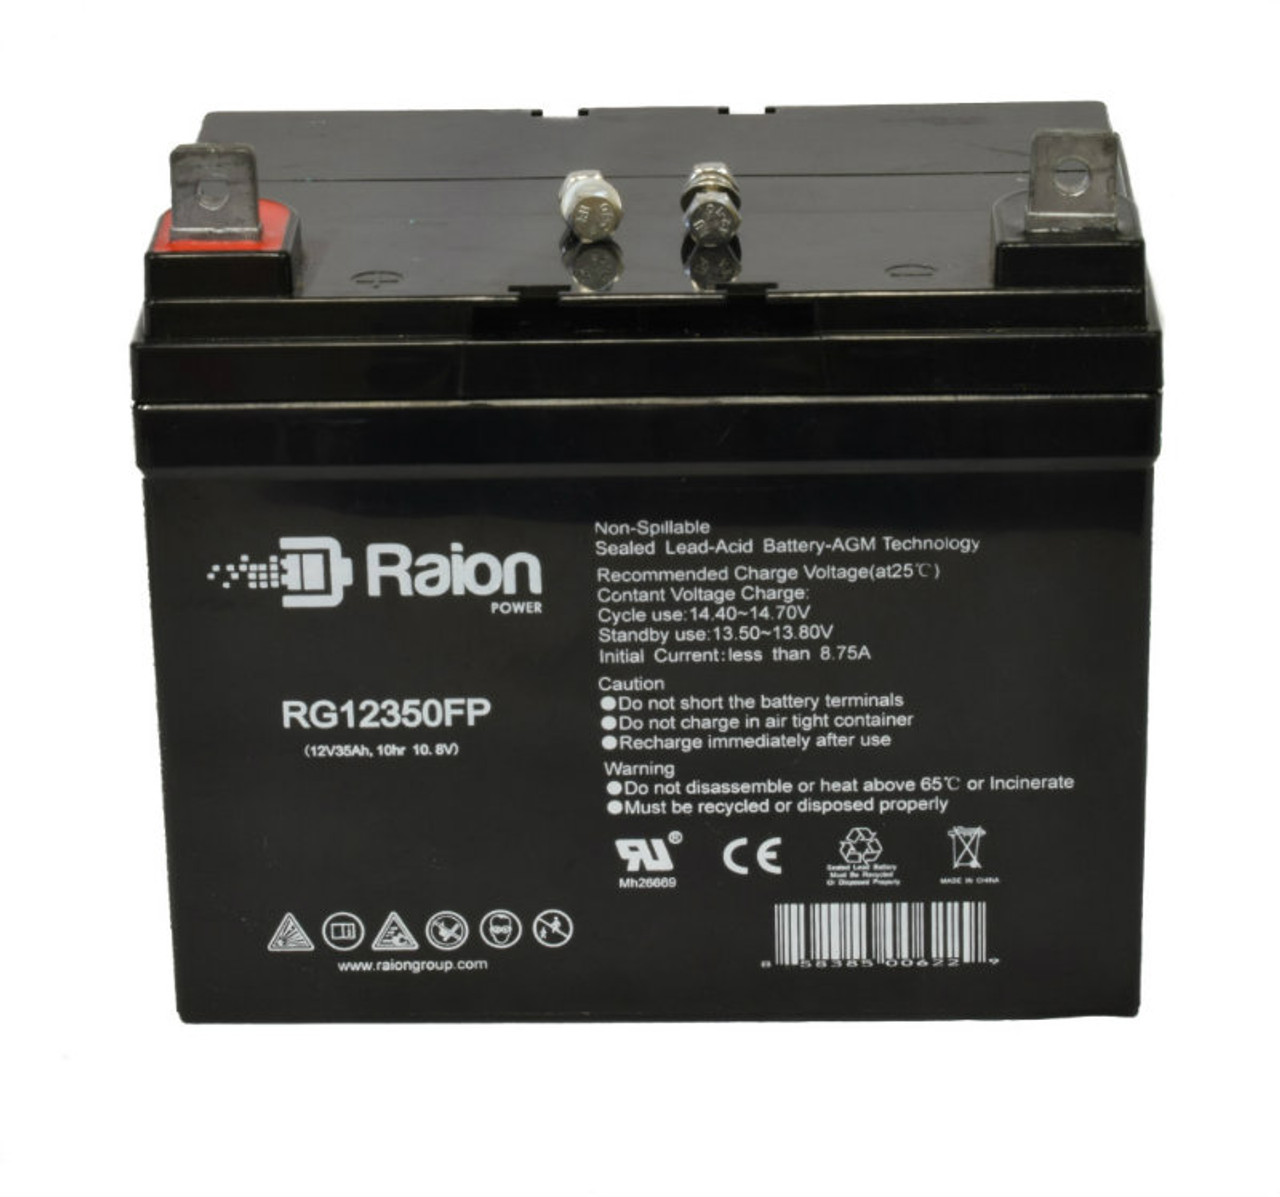 RG12350FP Sealed Lead Acid Battery Pack For Ram Power 13/PT Riding Lawn Mower